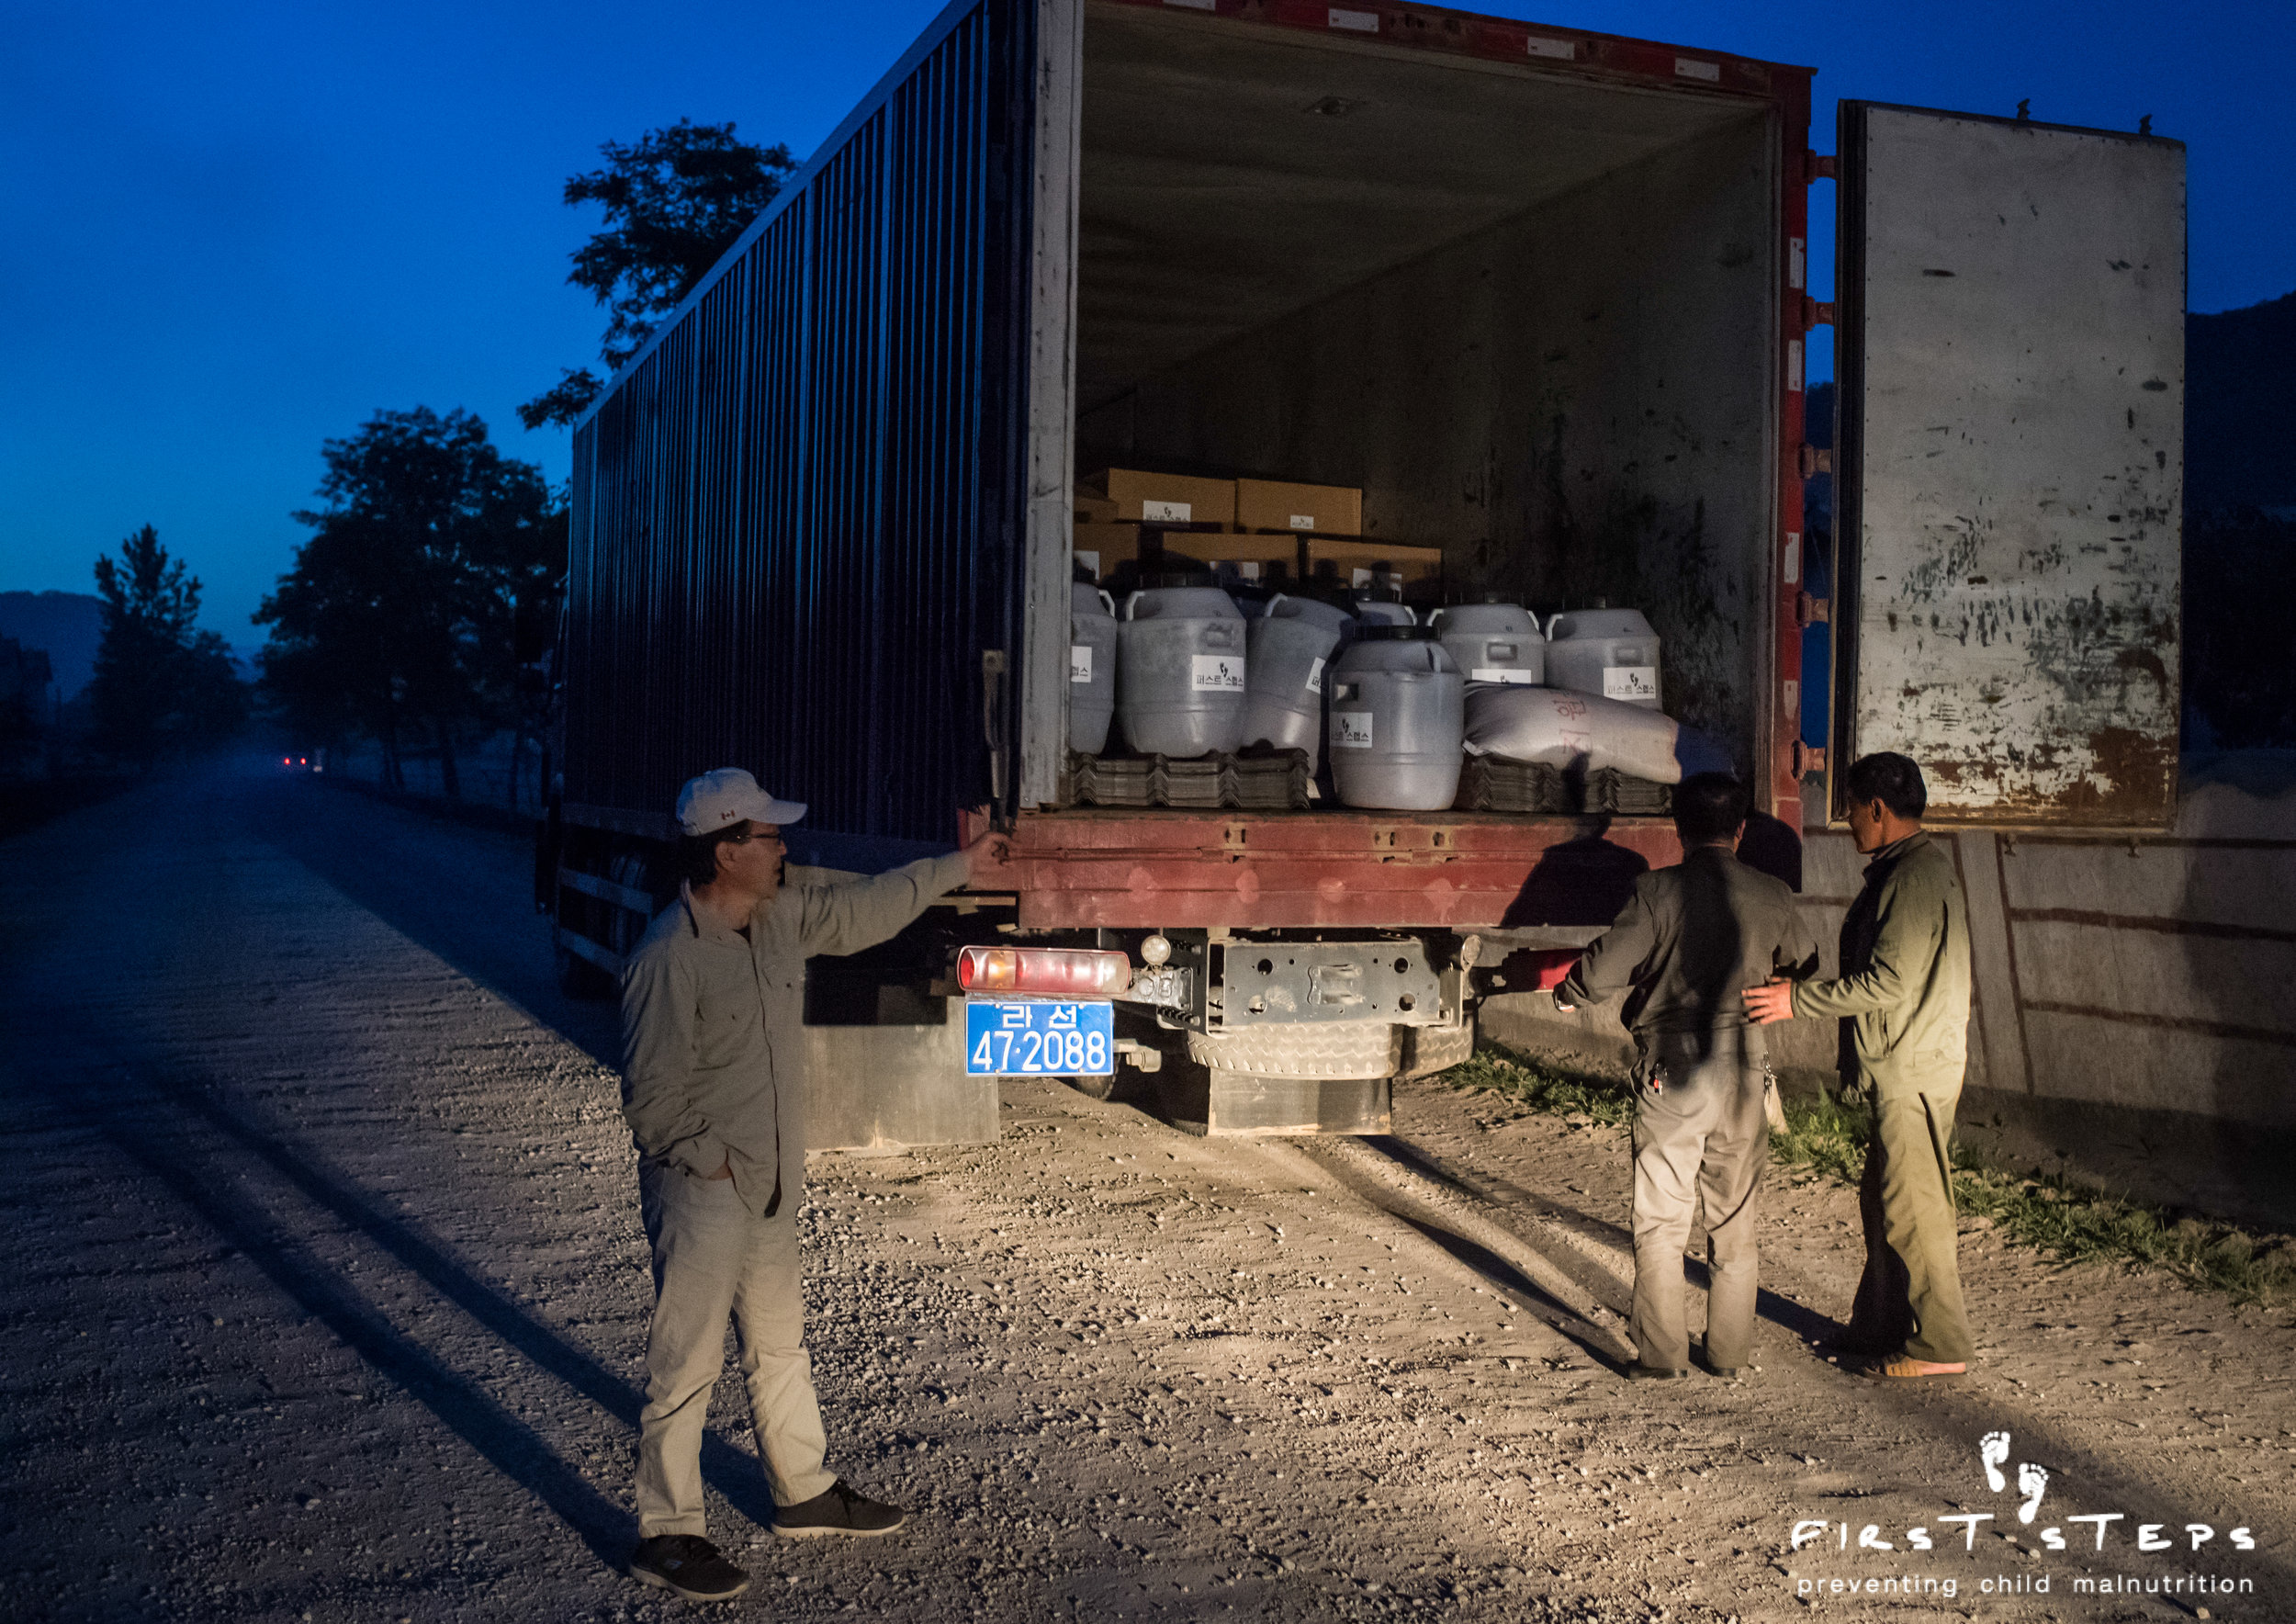 A truck carries First Steps' food aid and roofing to Yonsa.